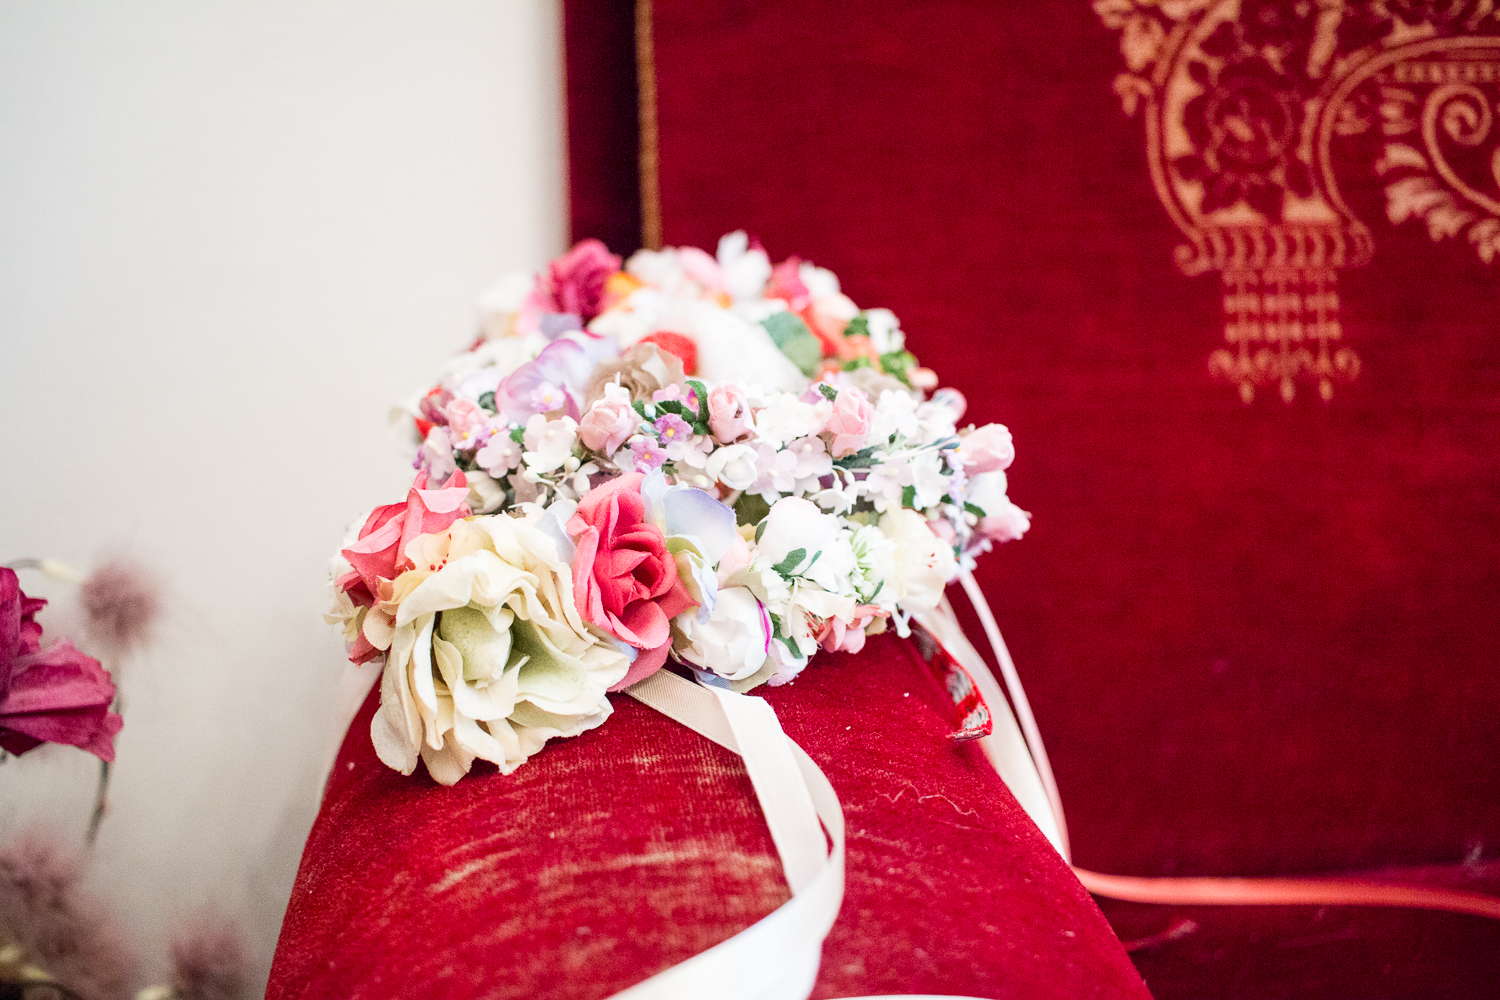 WE ARE FLOWERGIRLS Vienna - flower crowns for weddings | Love Daily Dose